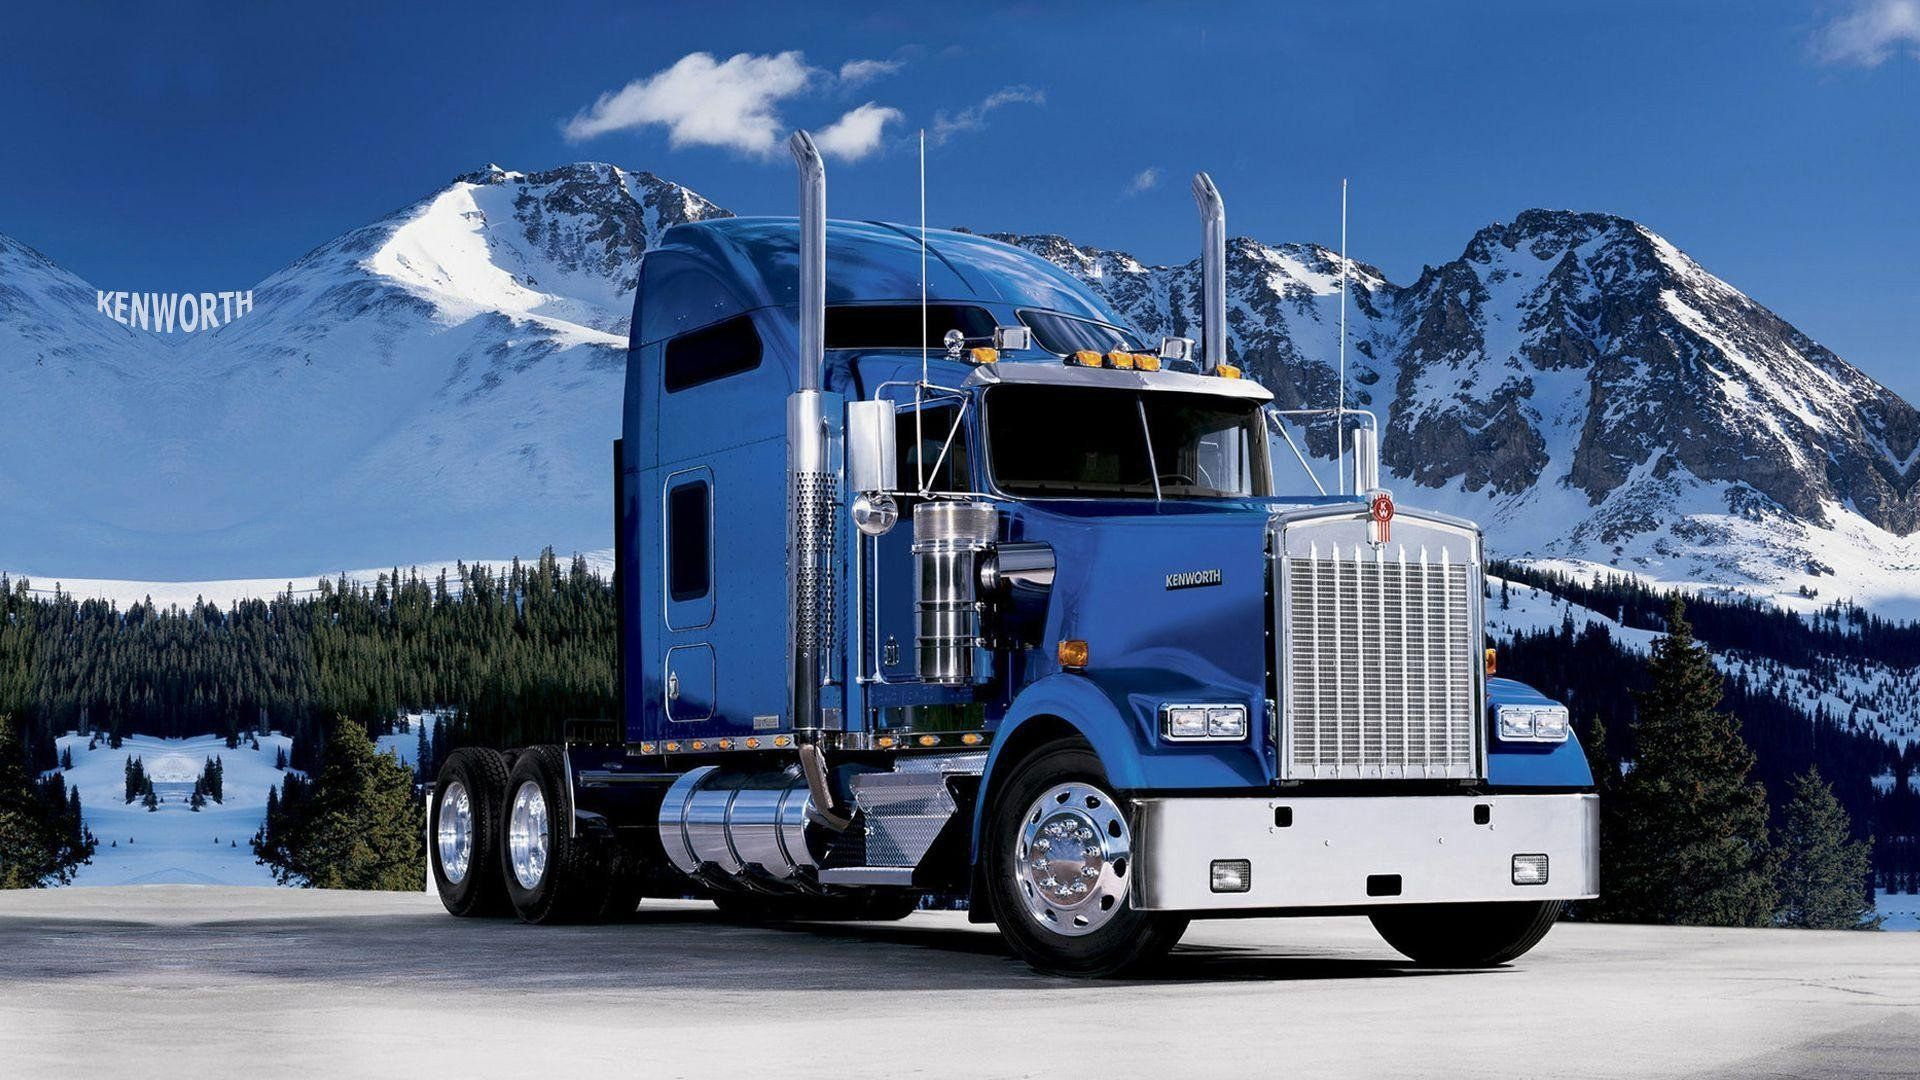 images of trucks and cars